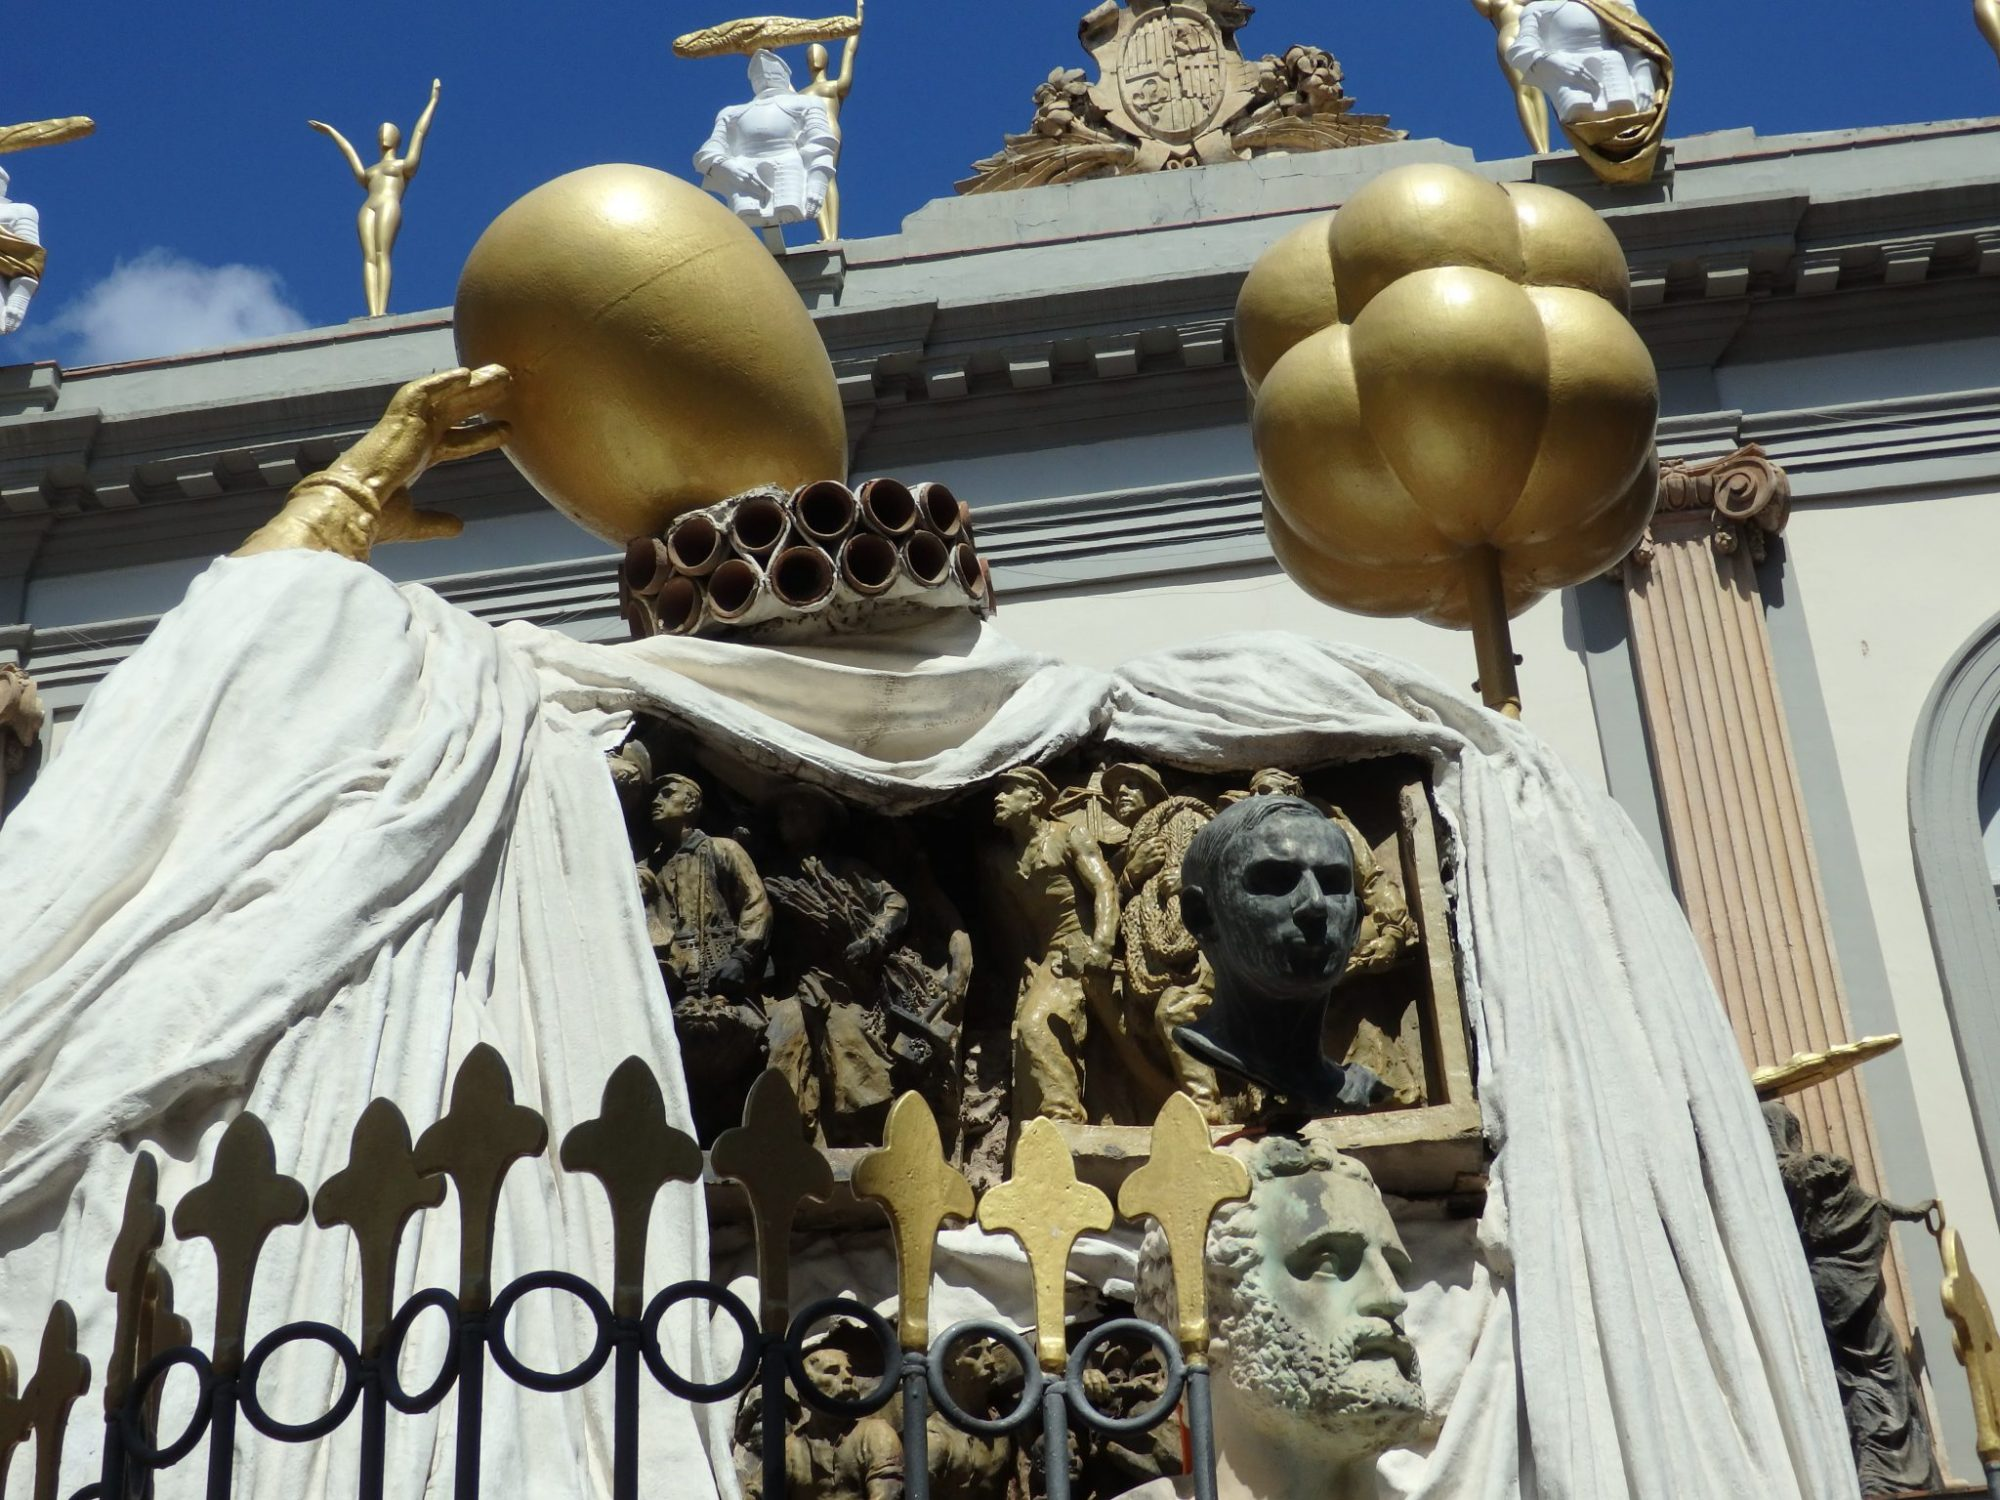 the upper portion of the Dali-designed monument to Francesc Pujols in Figueres, Spain